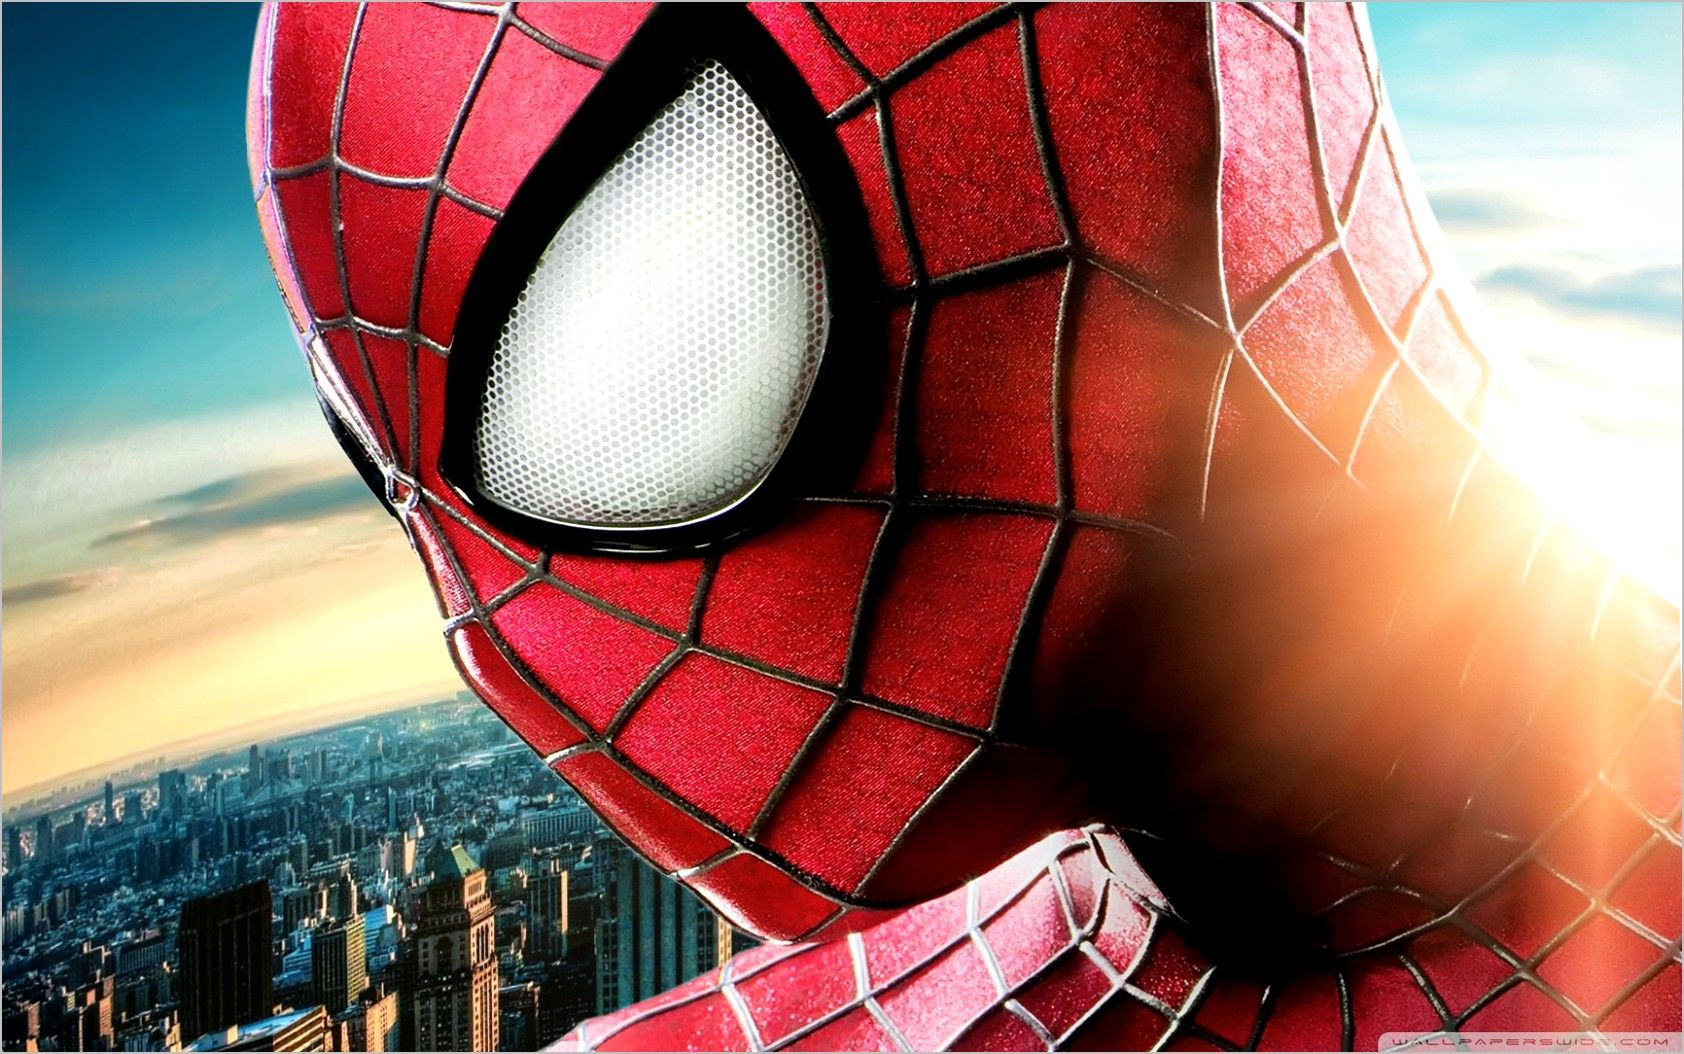 The Amazing Spider Man 2 Wallpaper 4k Spiderman Amazing Spider Amazing Spiderman